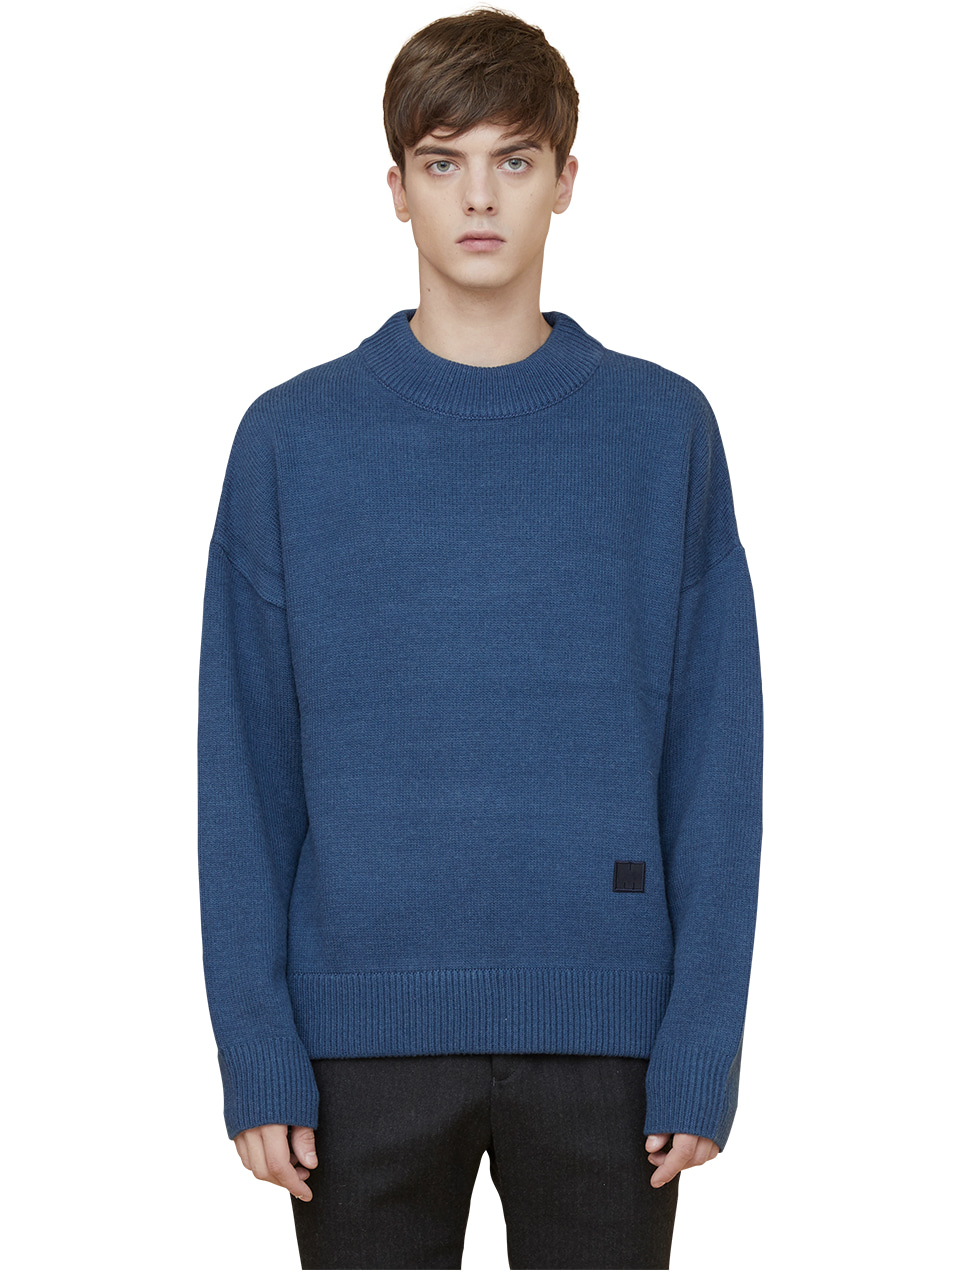 snuggle sweater - blue